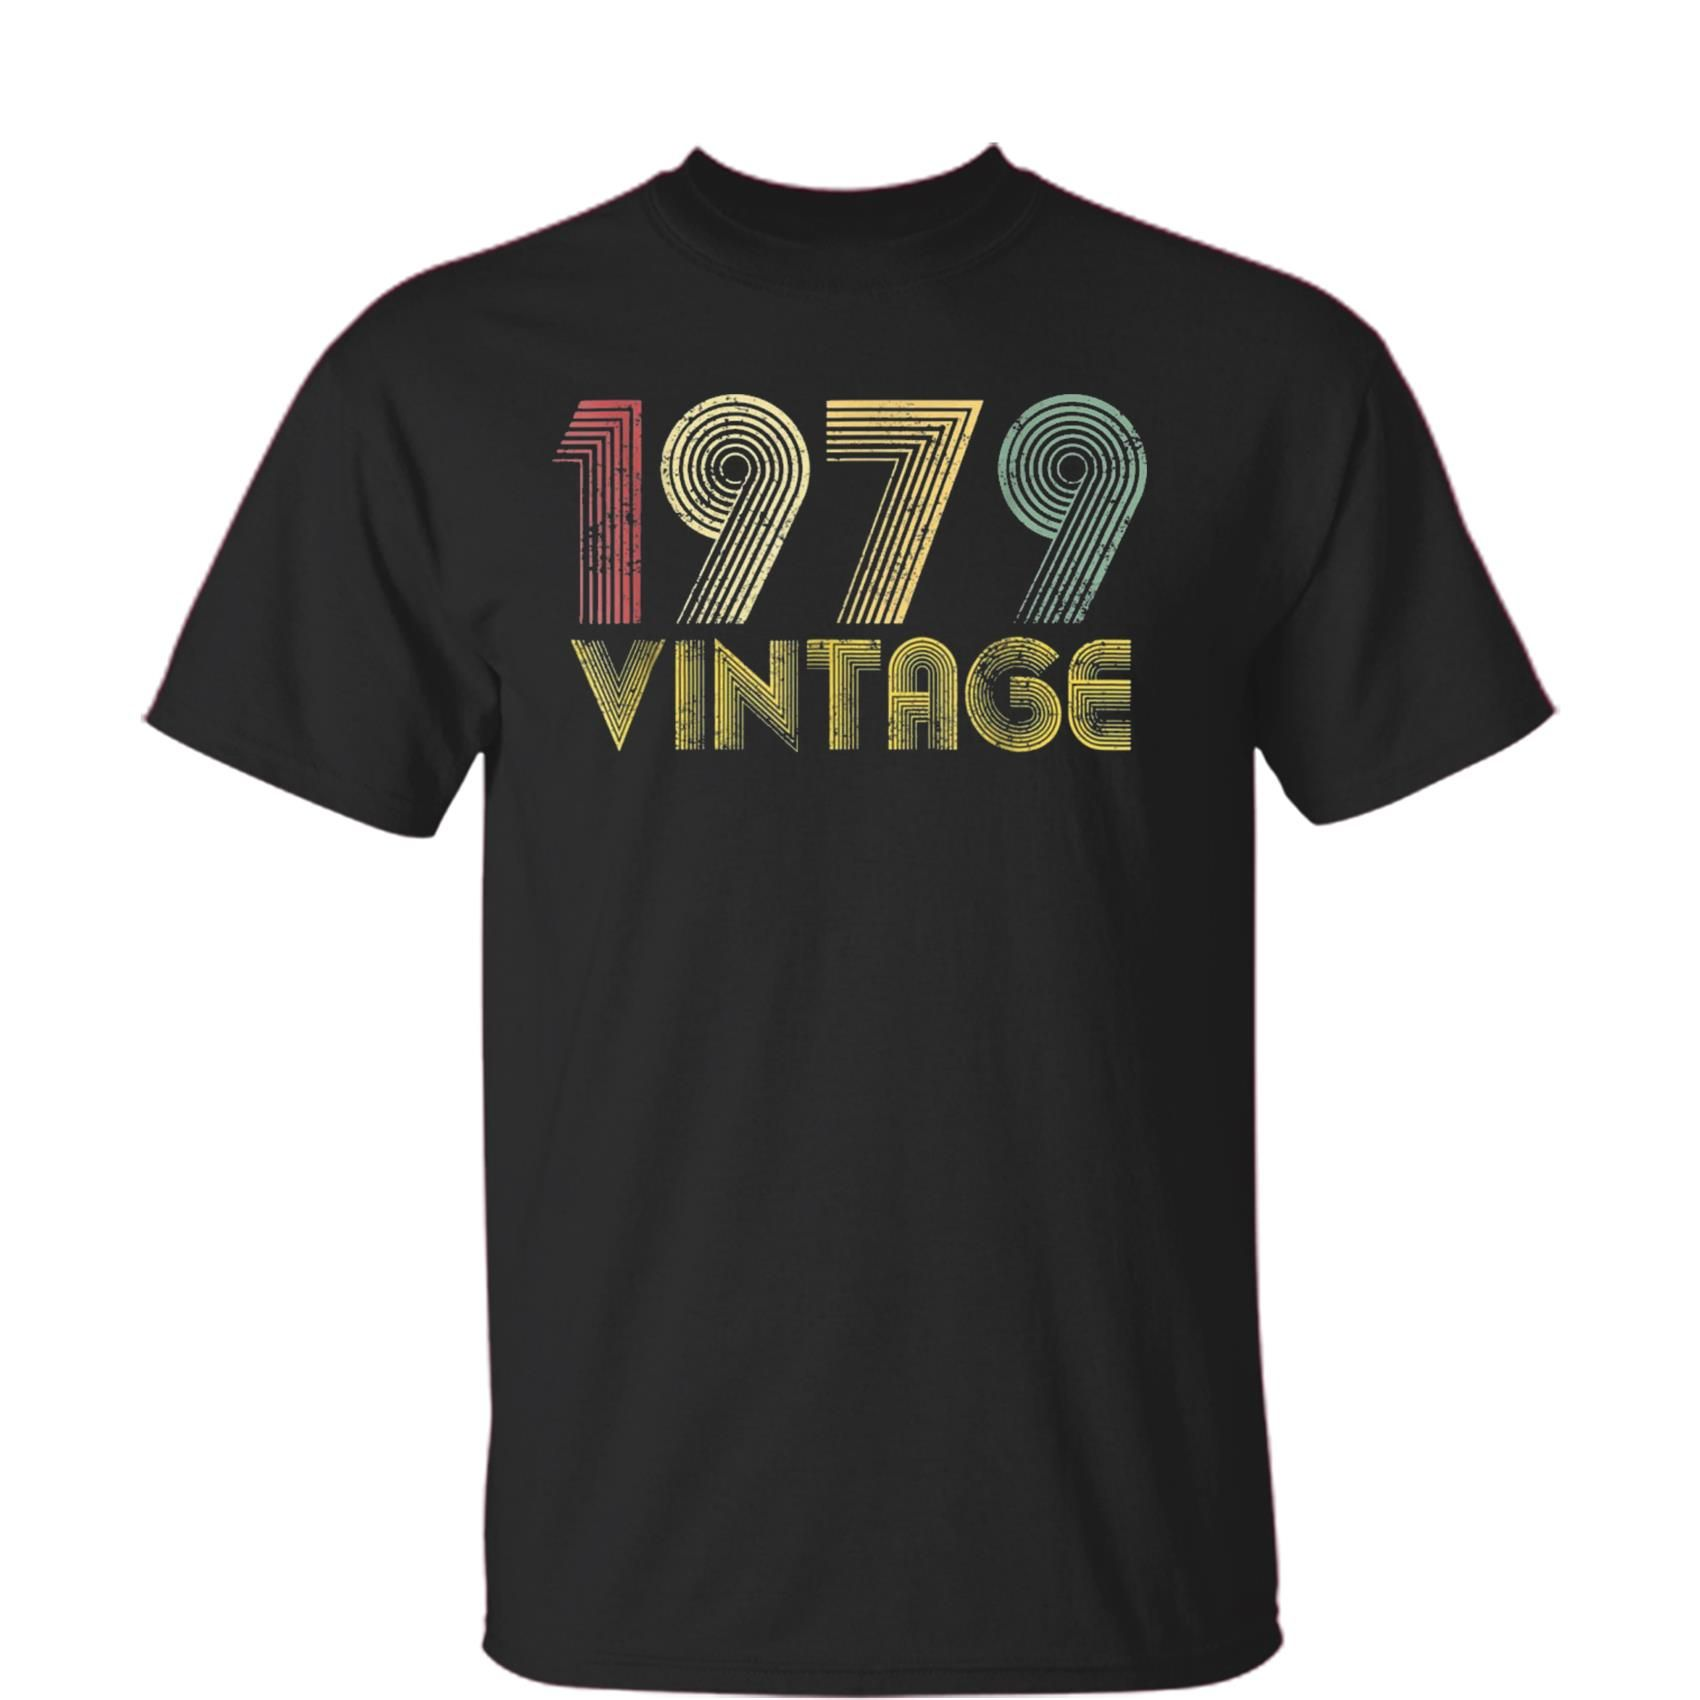 Vintage 1979 40th Birthday Gift 40 Years Old Funny T Shirt Best Gifts For Men Women Kids